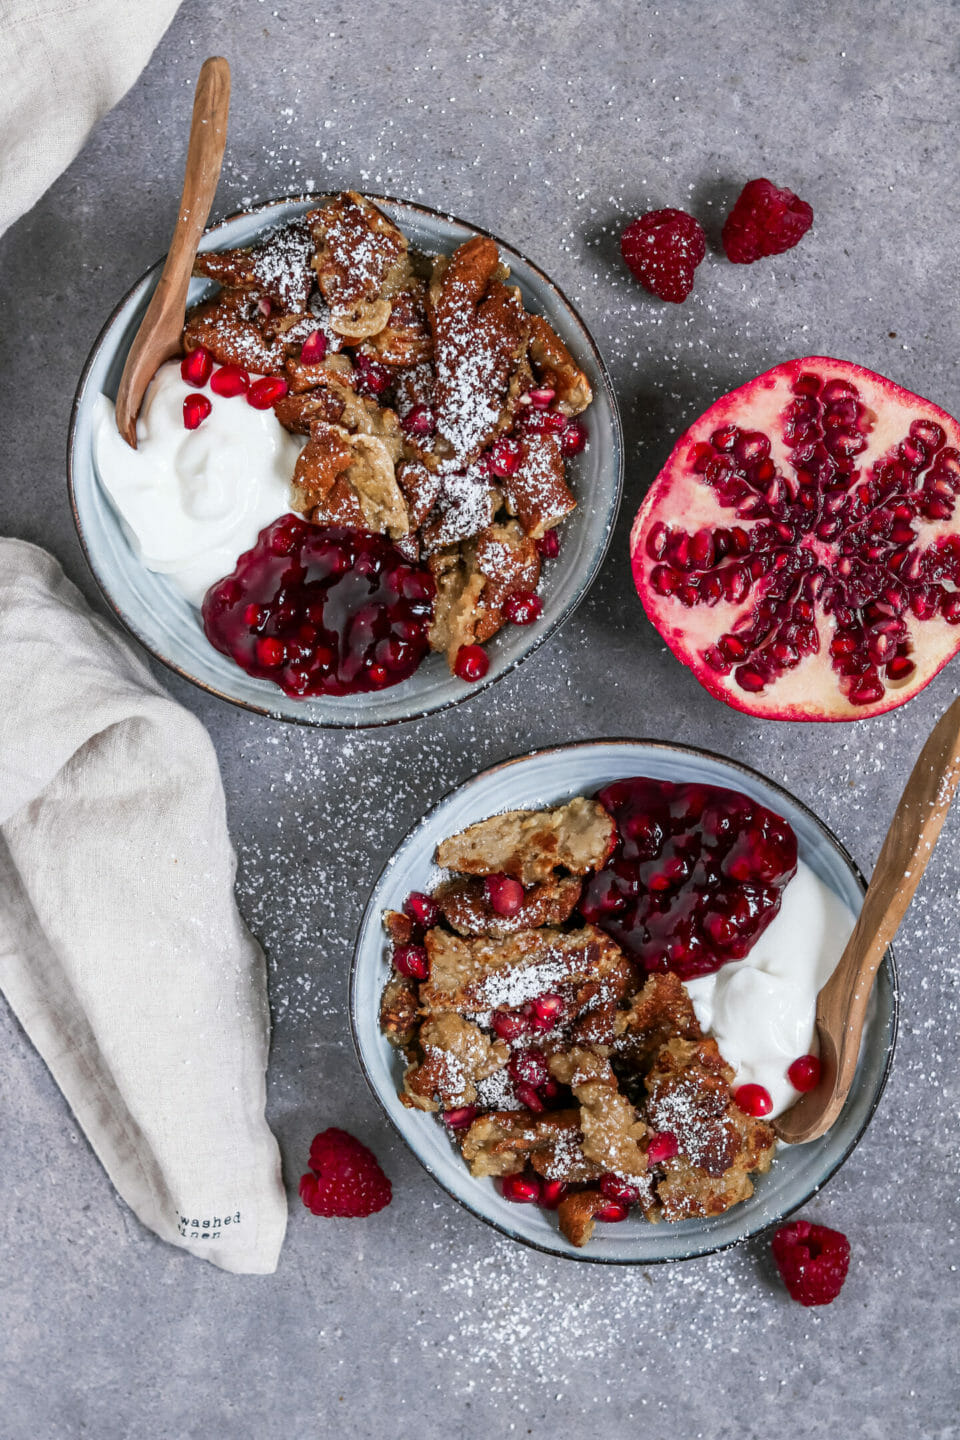 Vegan Kaiserschmarrn (scrambled pancakes) served in two bowls with berry compote and vegan yogurt.